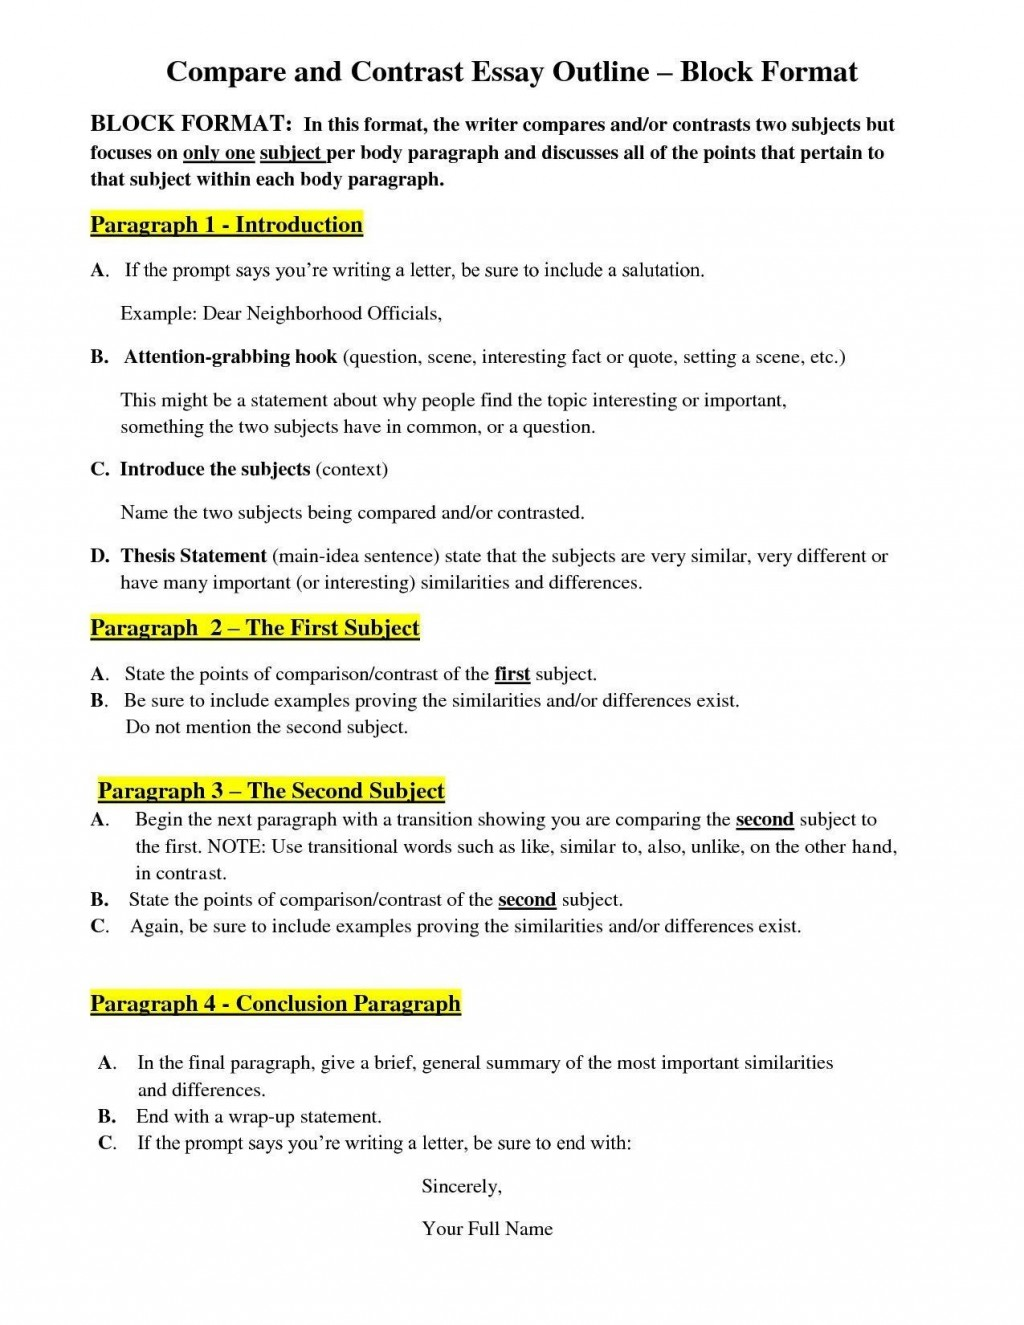 014 Essay Examplempare Andntrastmparison Best Examples Of Scenario In 6th Grade An Goo 3rd Food 5th Middle School Block Format Pdf High 4th Vs Striking Compare And Contrast Example Topics 8 8th College Outline Large